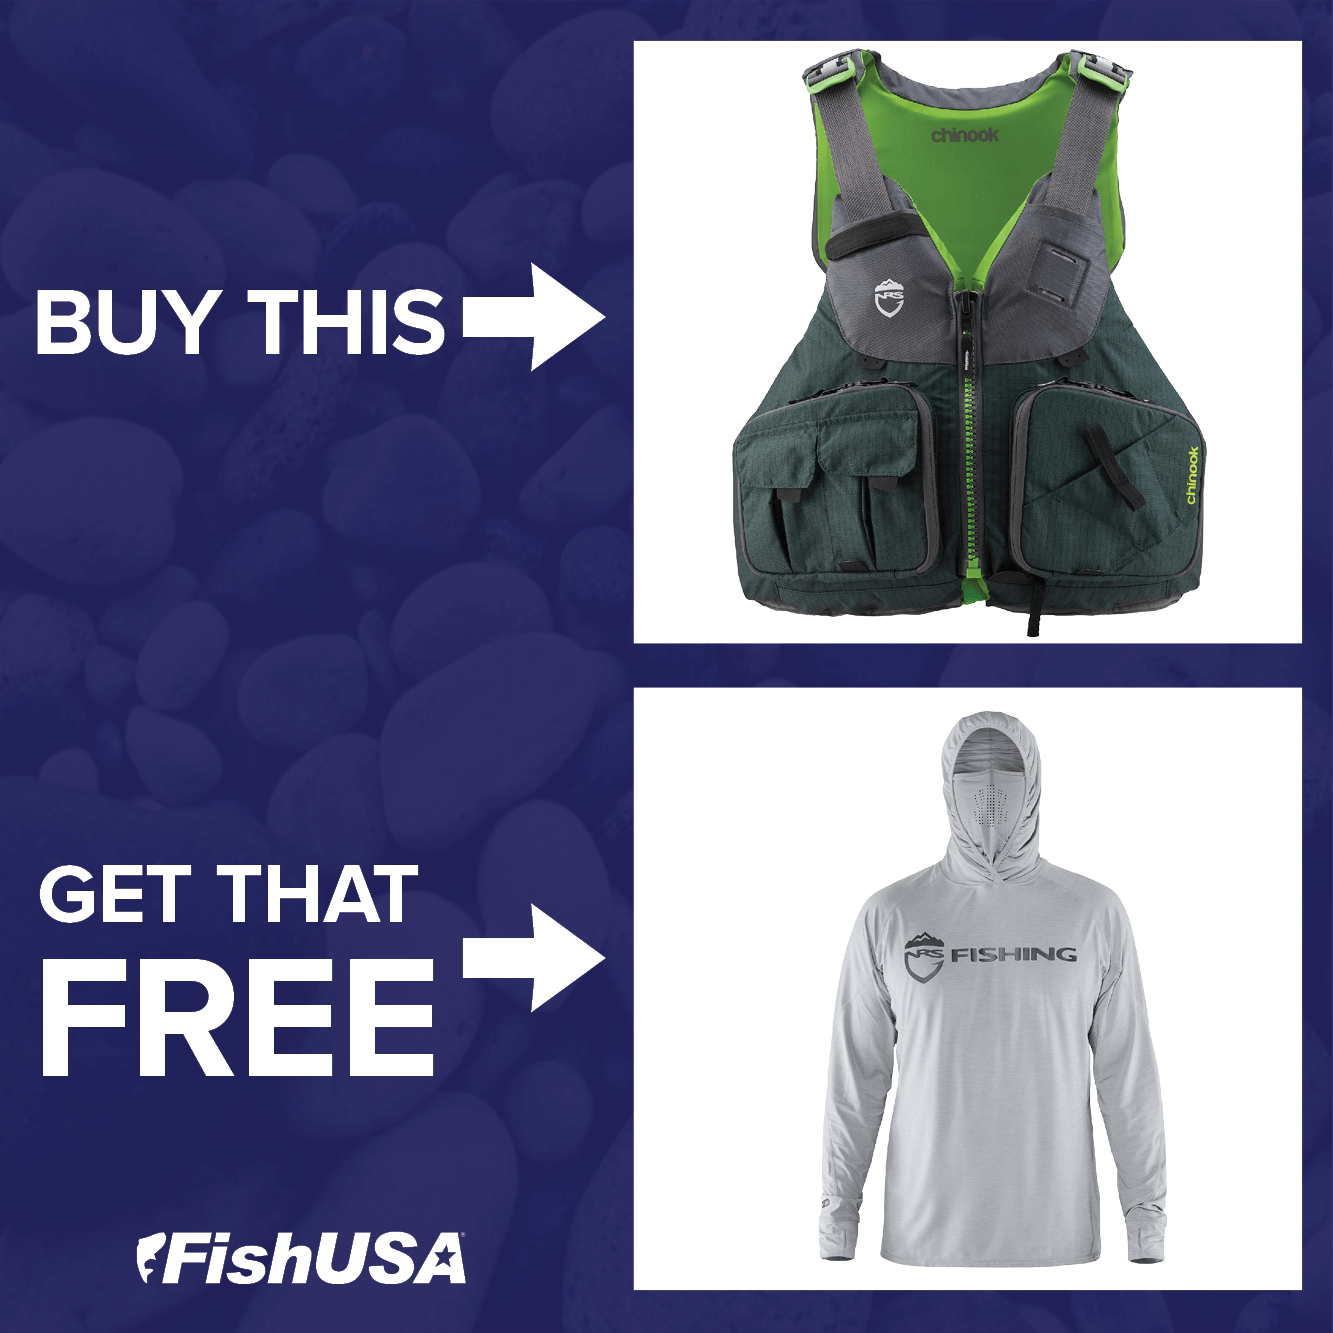 BUY an NRS Chinook Fishing Life Vest, GET an NRS Varial Hoodie FREE!